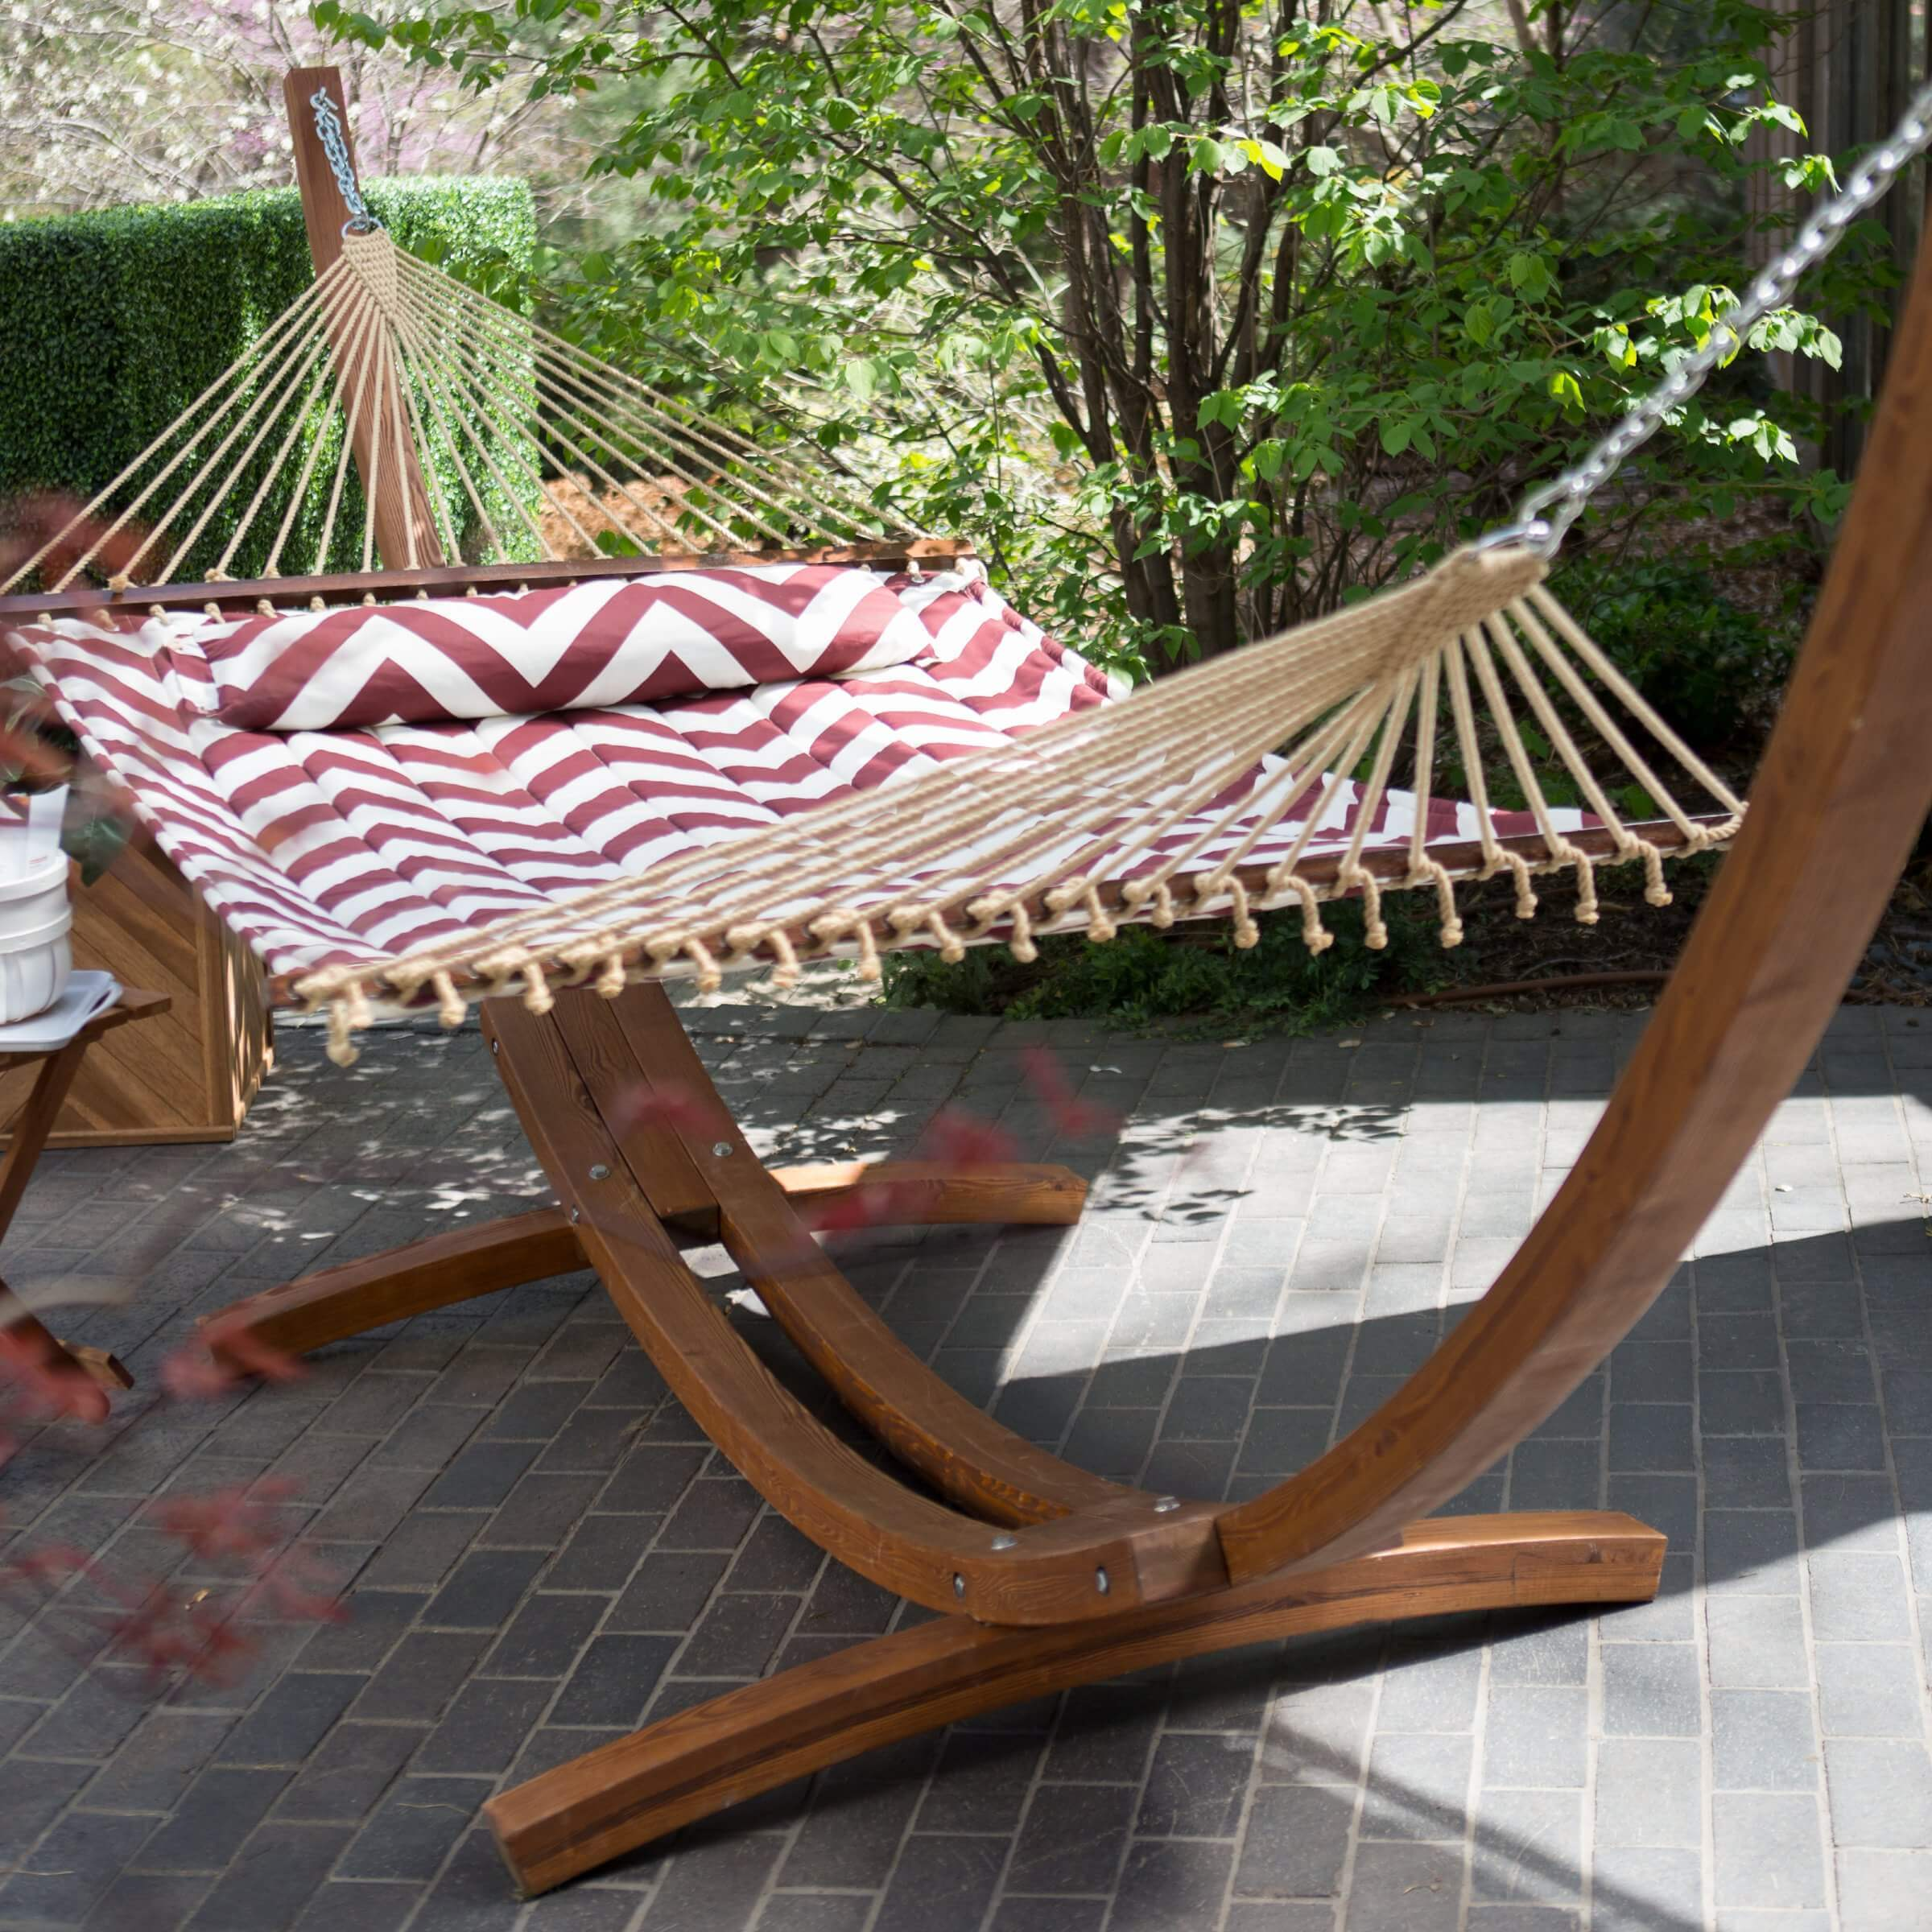 This high end padded hammock utilizes a sturdy base crafted with gorgeous wood. This stylish and quality hammock would look fantastic in any place and in any yard.